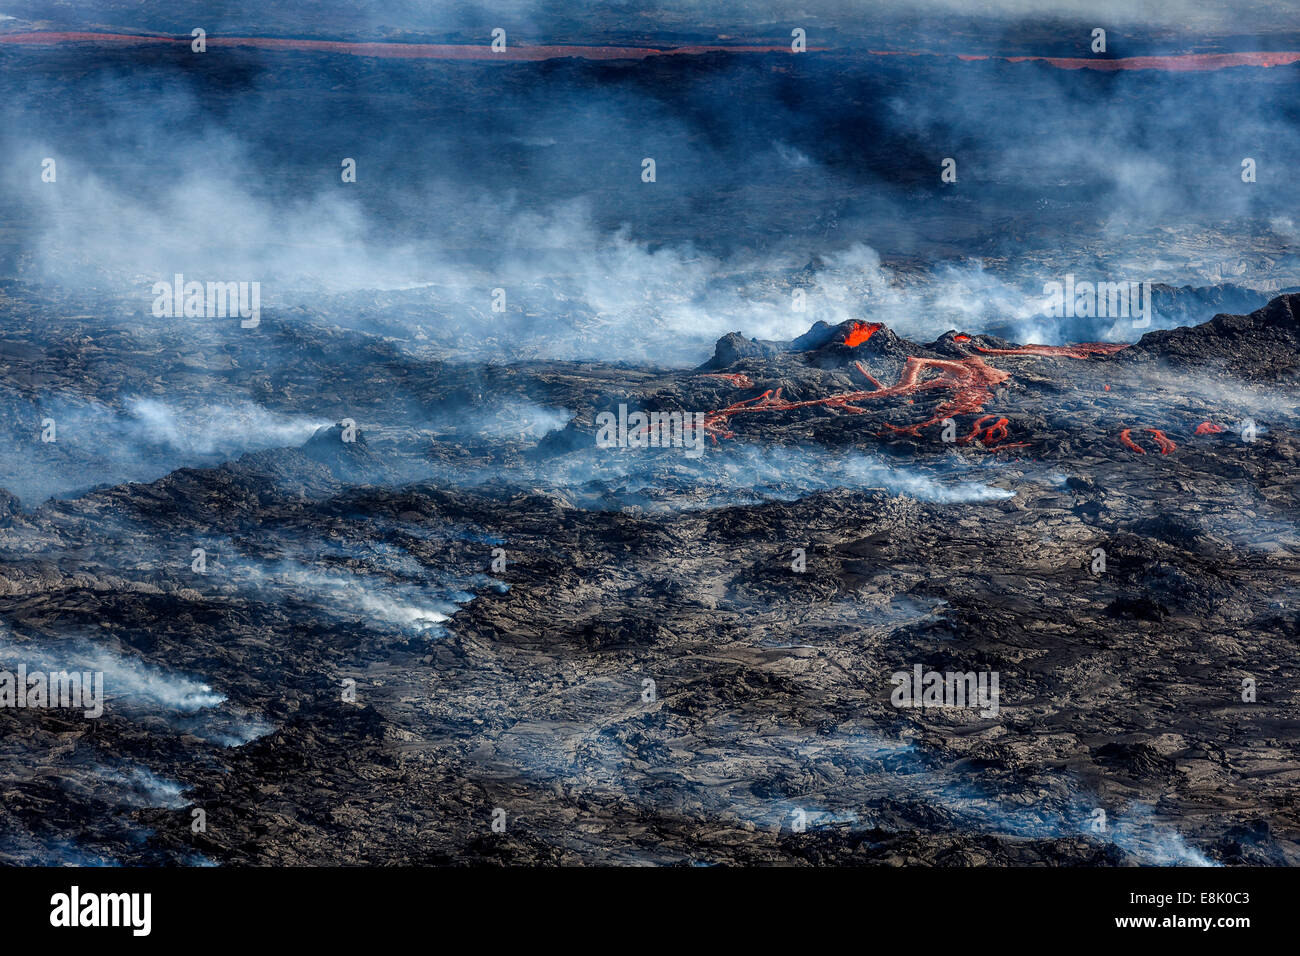 Volcano Eruption at the Holuhraun Fissure near the Bardarbunga Volcano, Iceland. - Stock Image